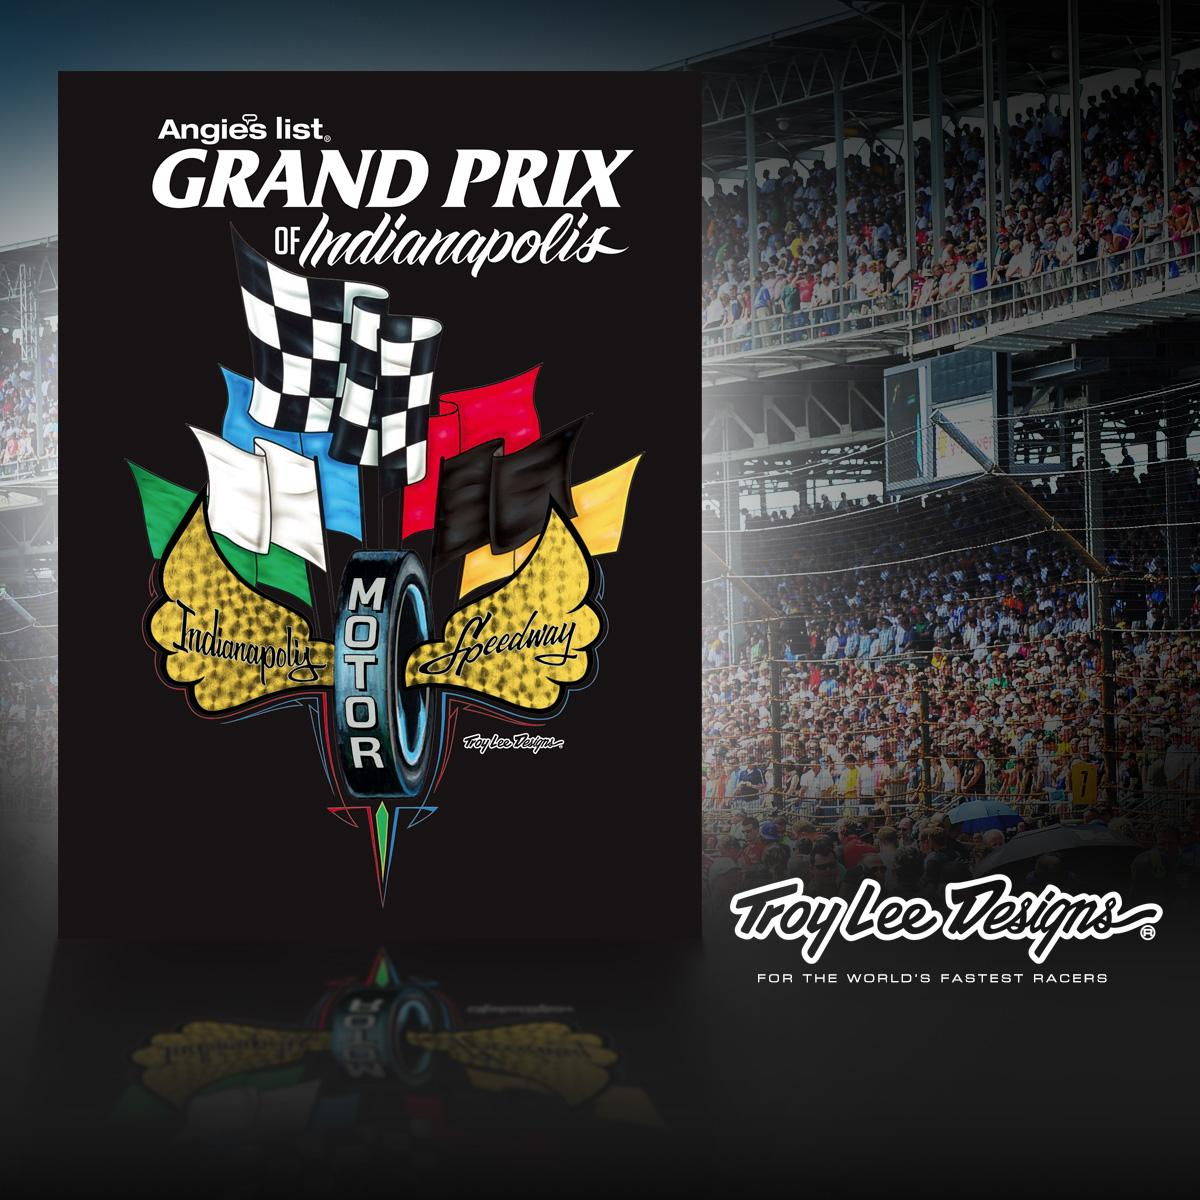 Pumped to have designed some cool program cover art for the #GPofIndy this weekend! Thanks @IMS for the project! http://t.co/67OIKz8H4P